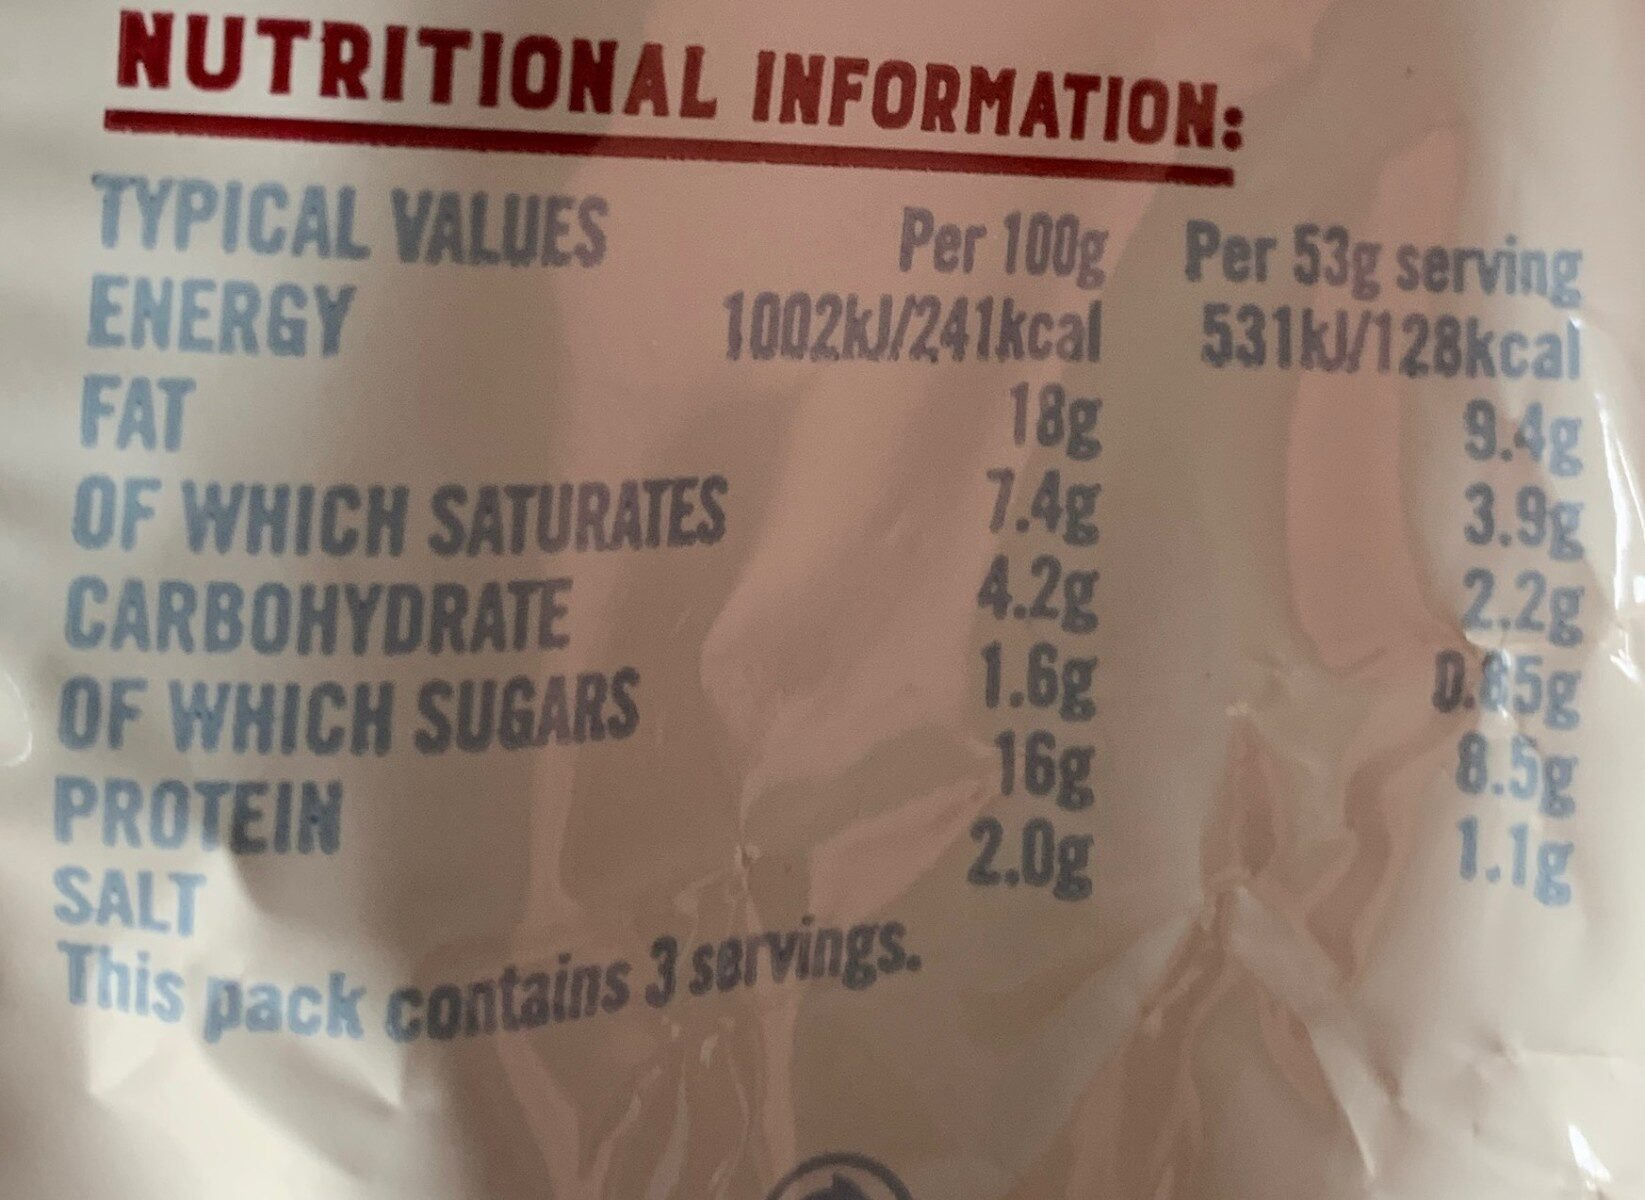 Smoked pork sausage reduced fat - Nutrition facts - en